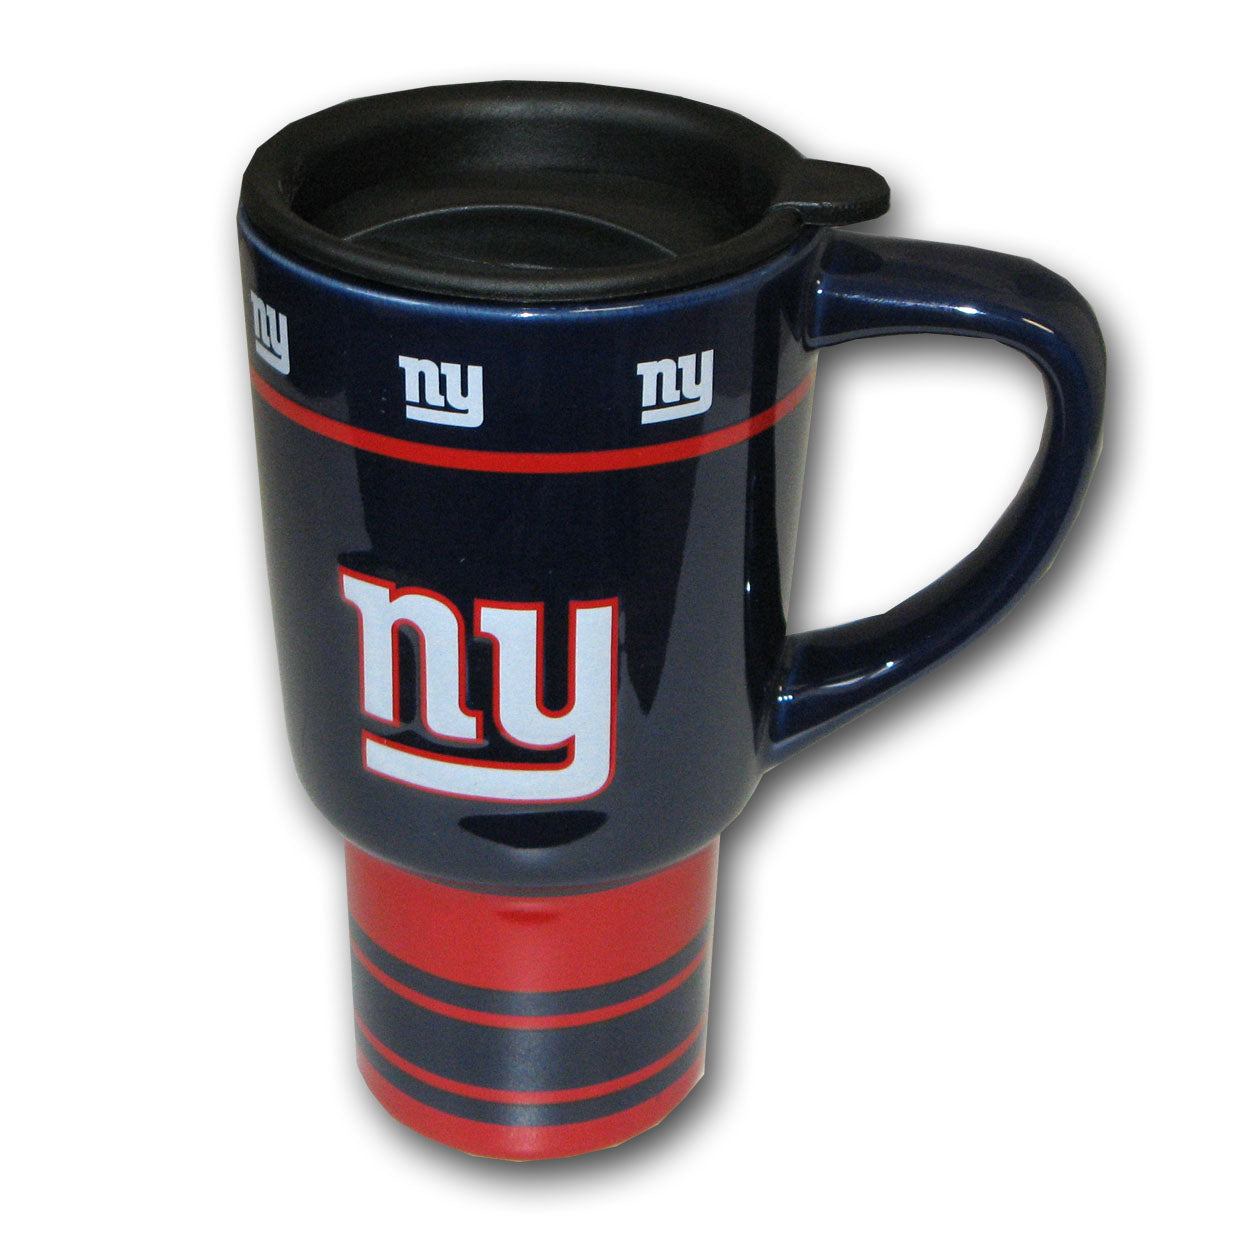 NFL 15oz Sculpted Travel Mug - New York Giants - Sports Butler